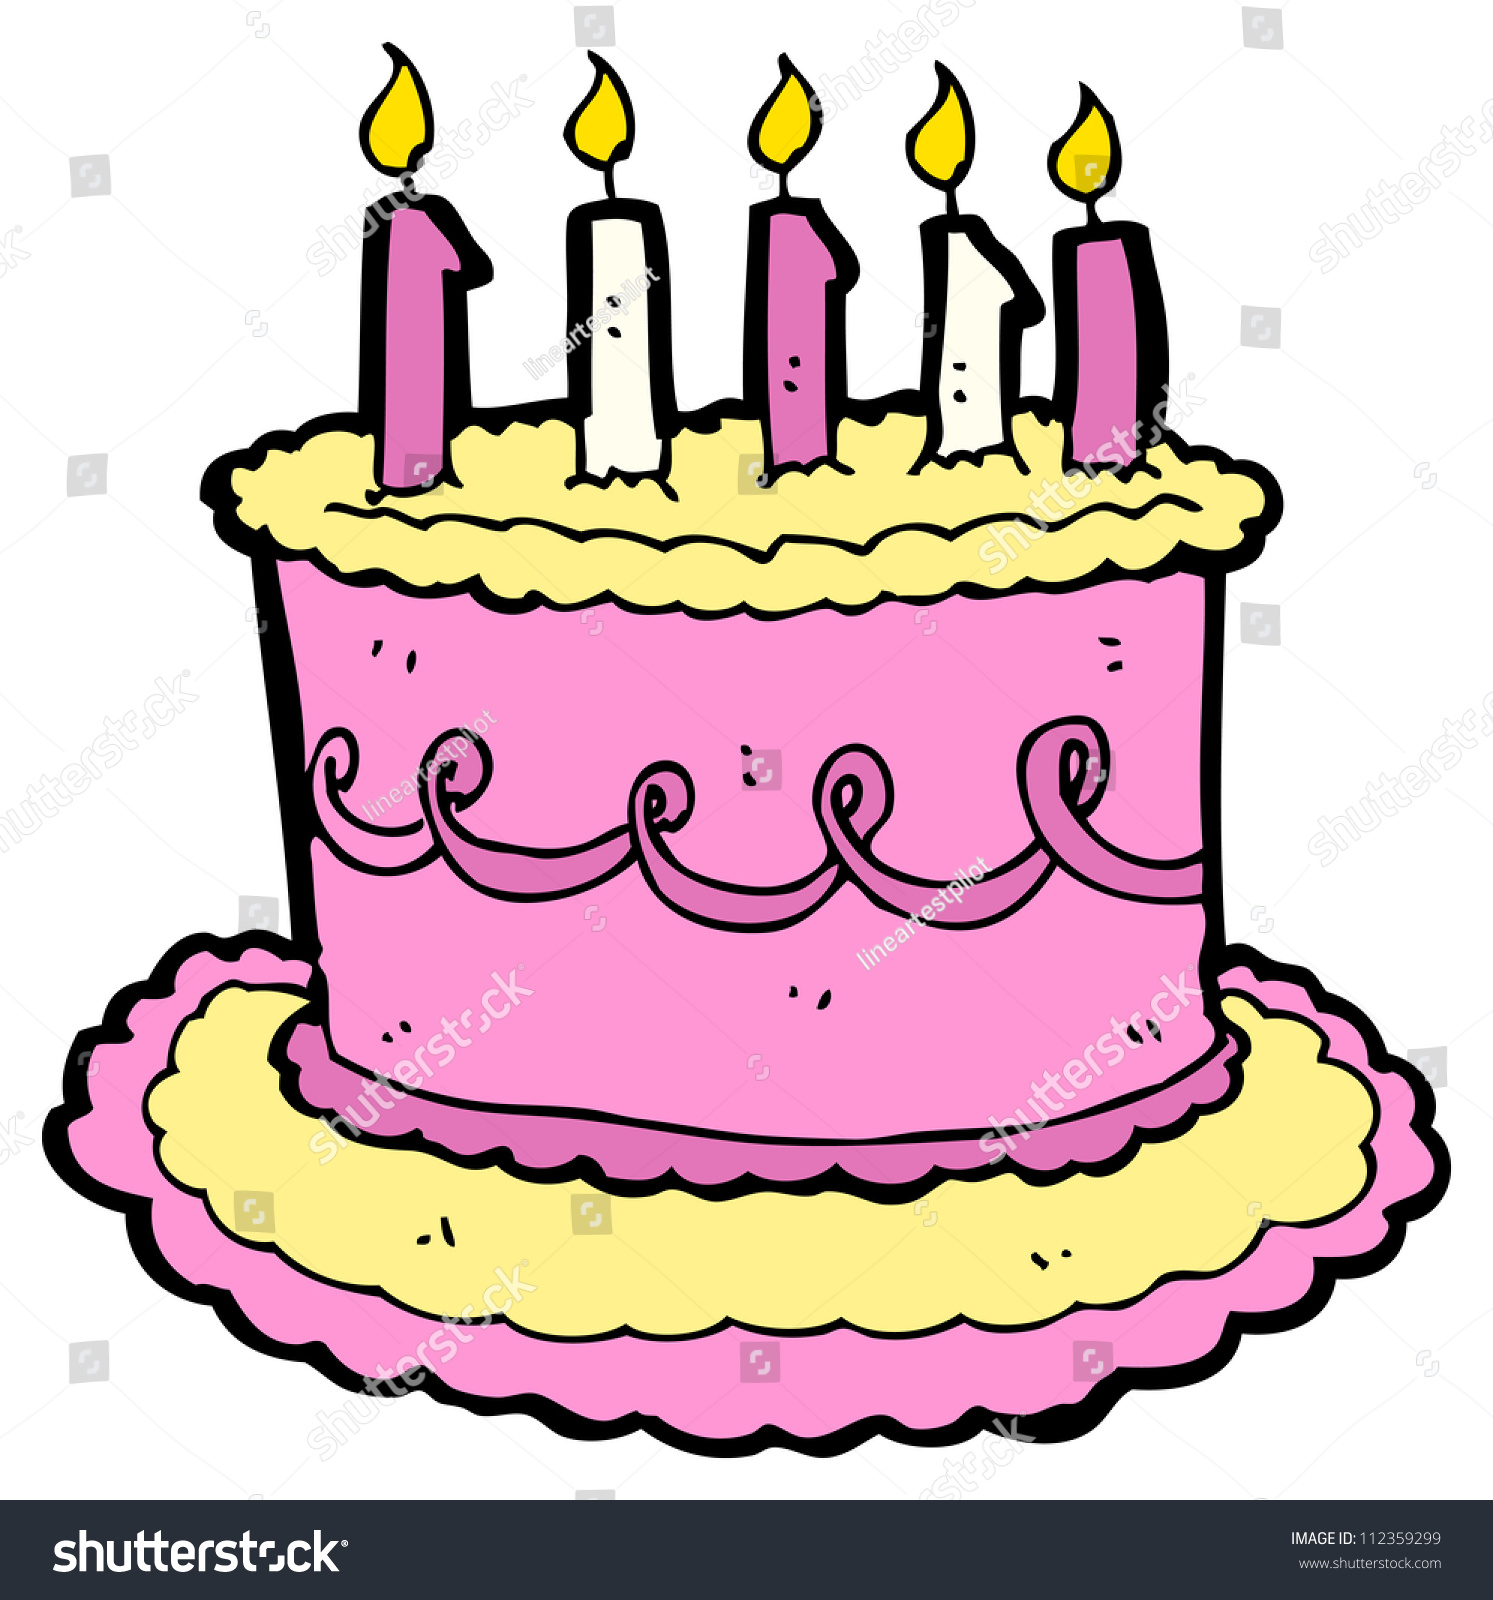 Cartoon Birthday Cake Stock Illustration 112359299 ...